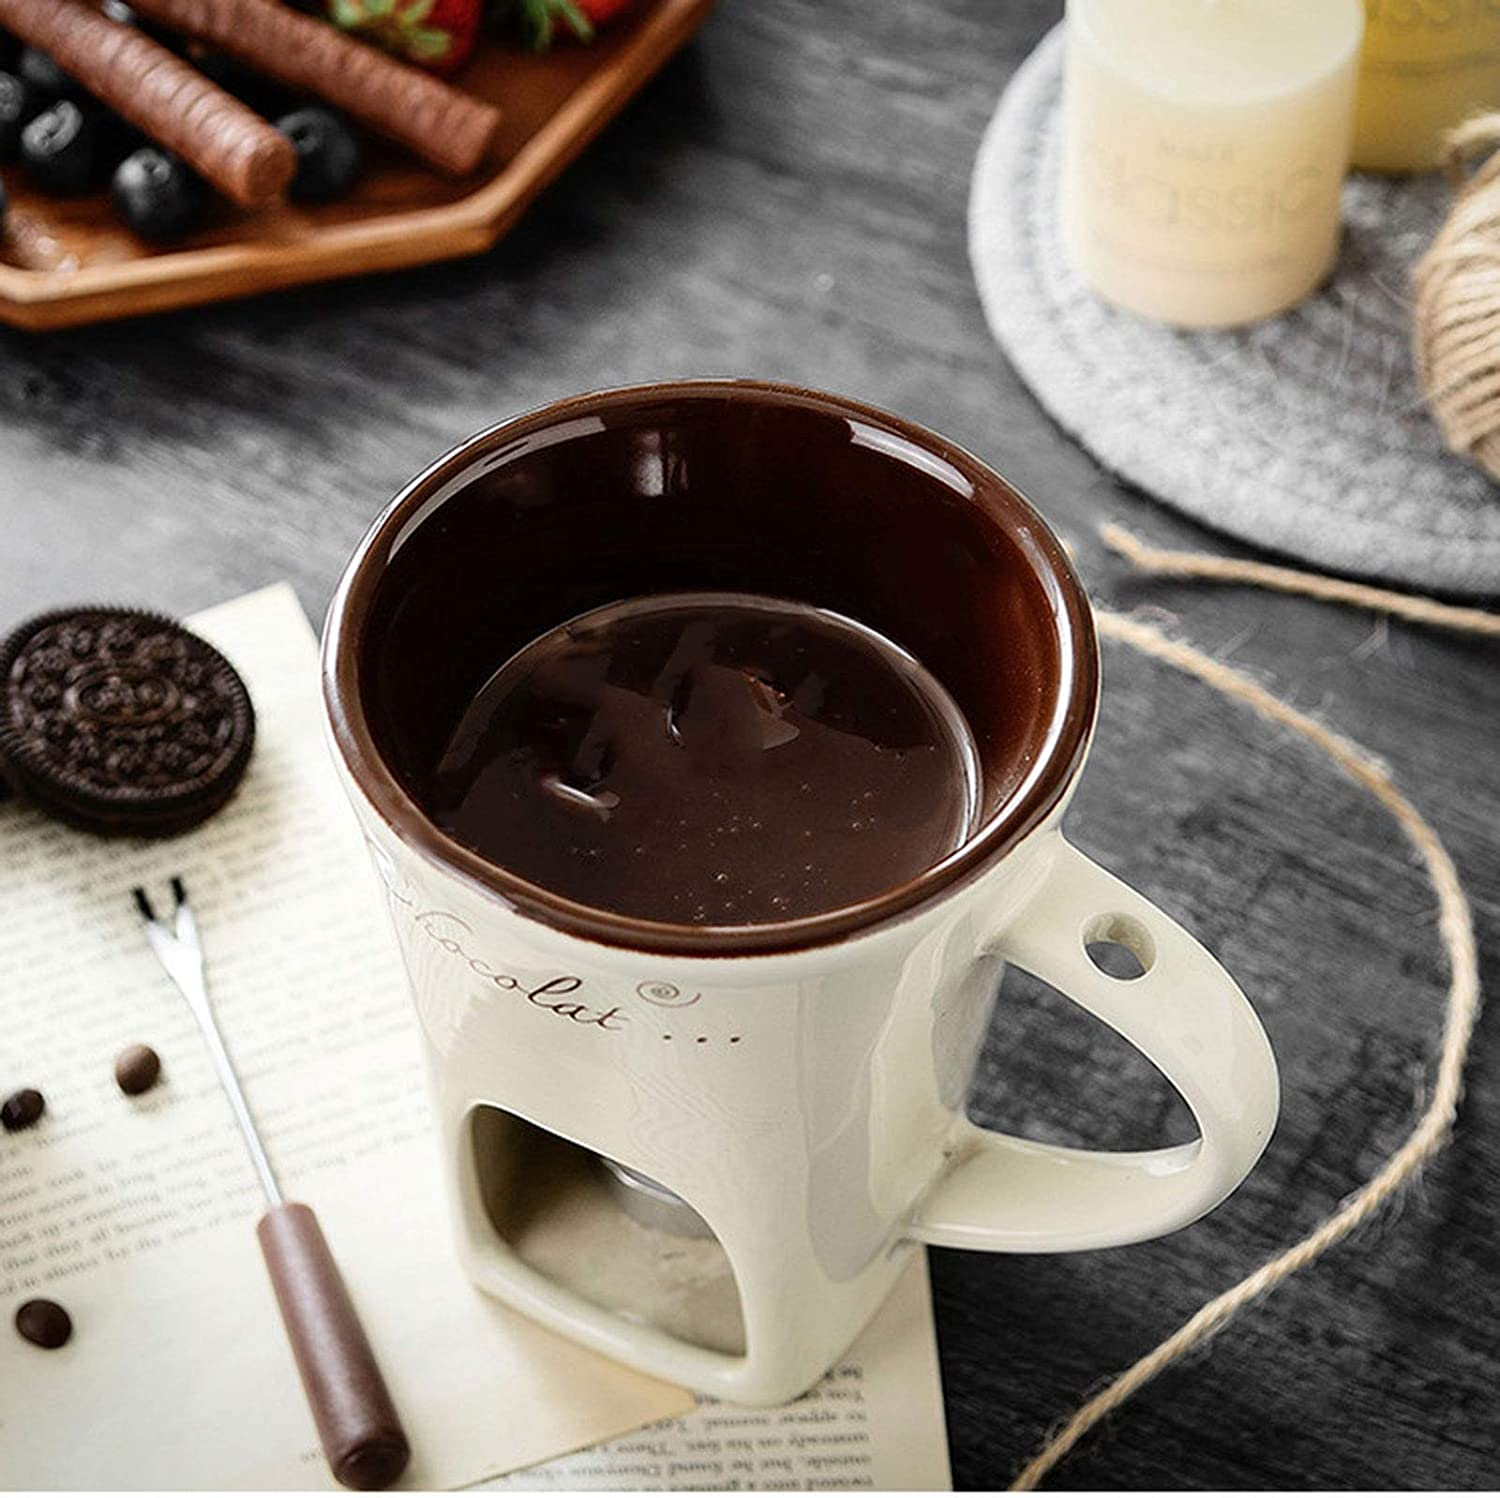 for Cheese Butter,Beige Chocolate Fondue Set with A Stainless Steel Forks Microwave and Dishwasher Safe